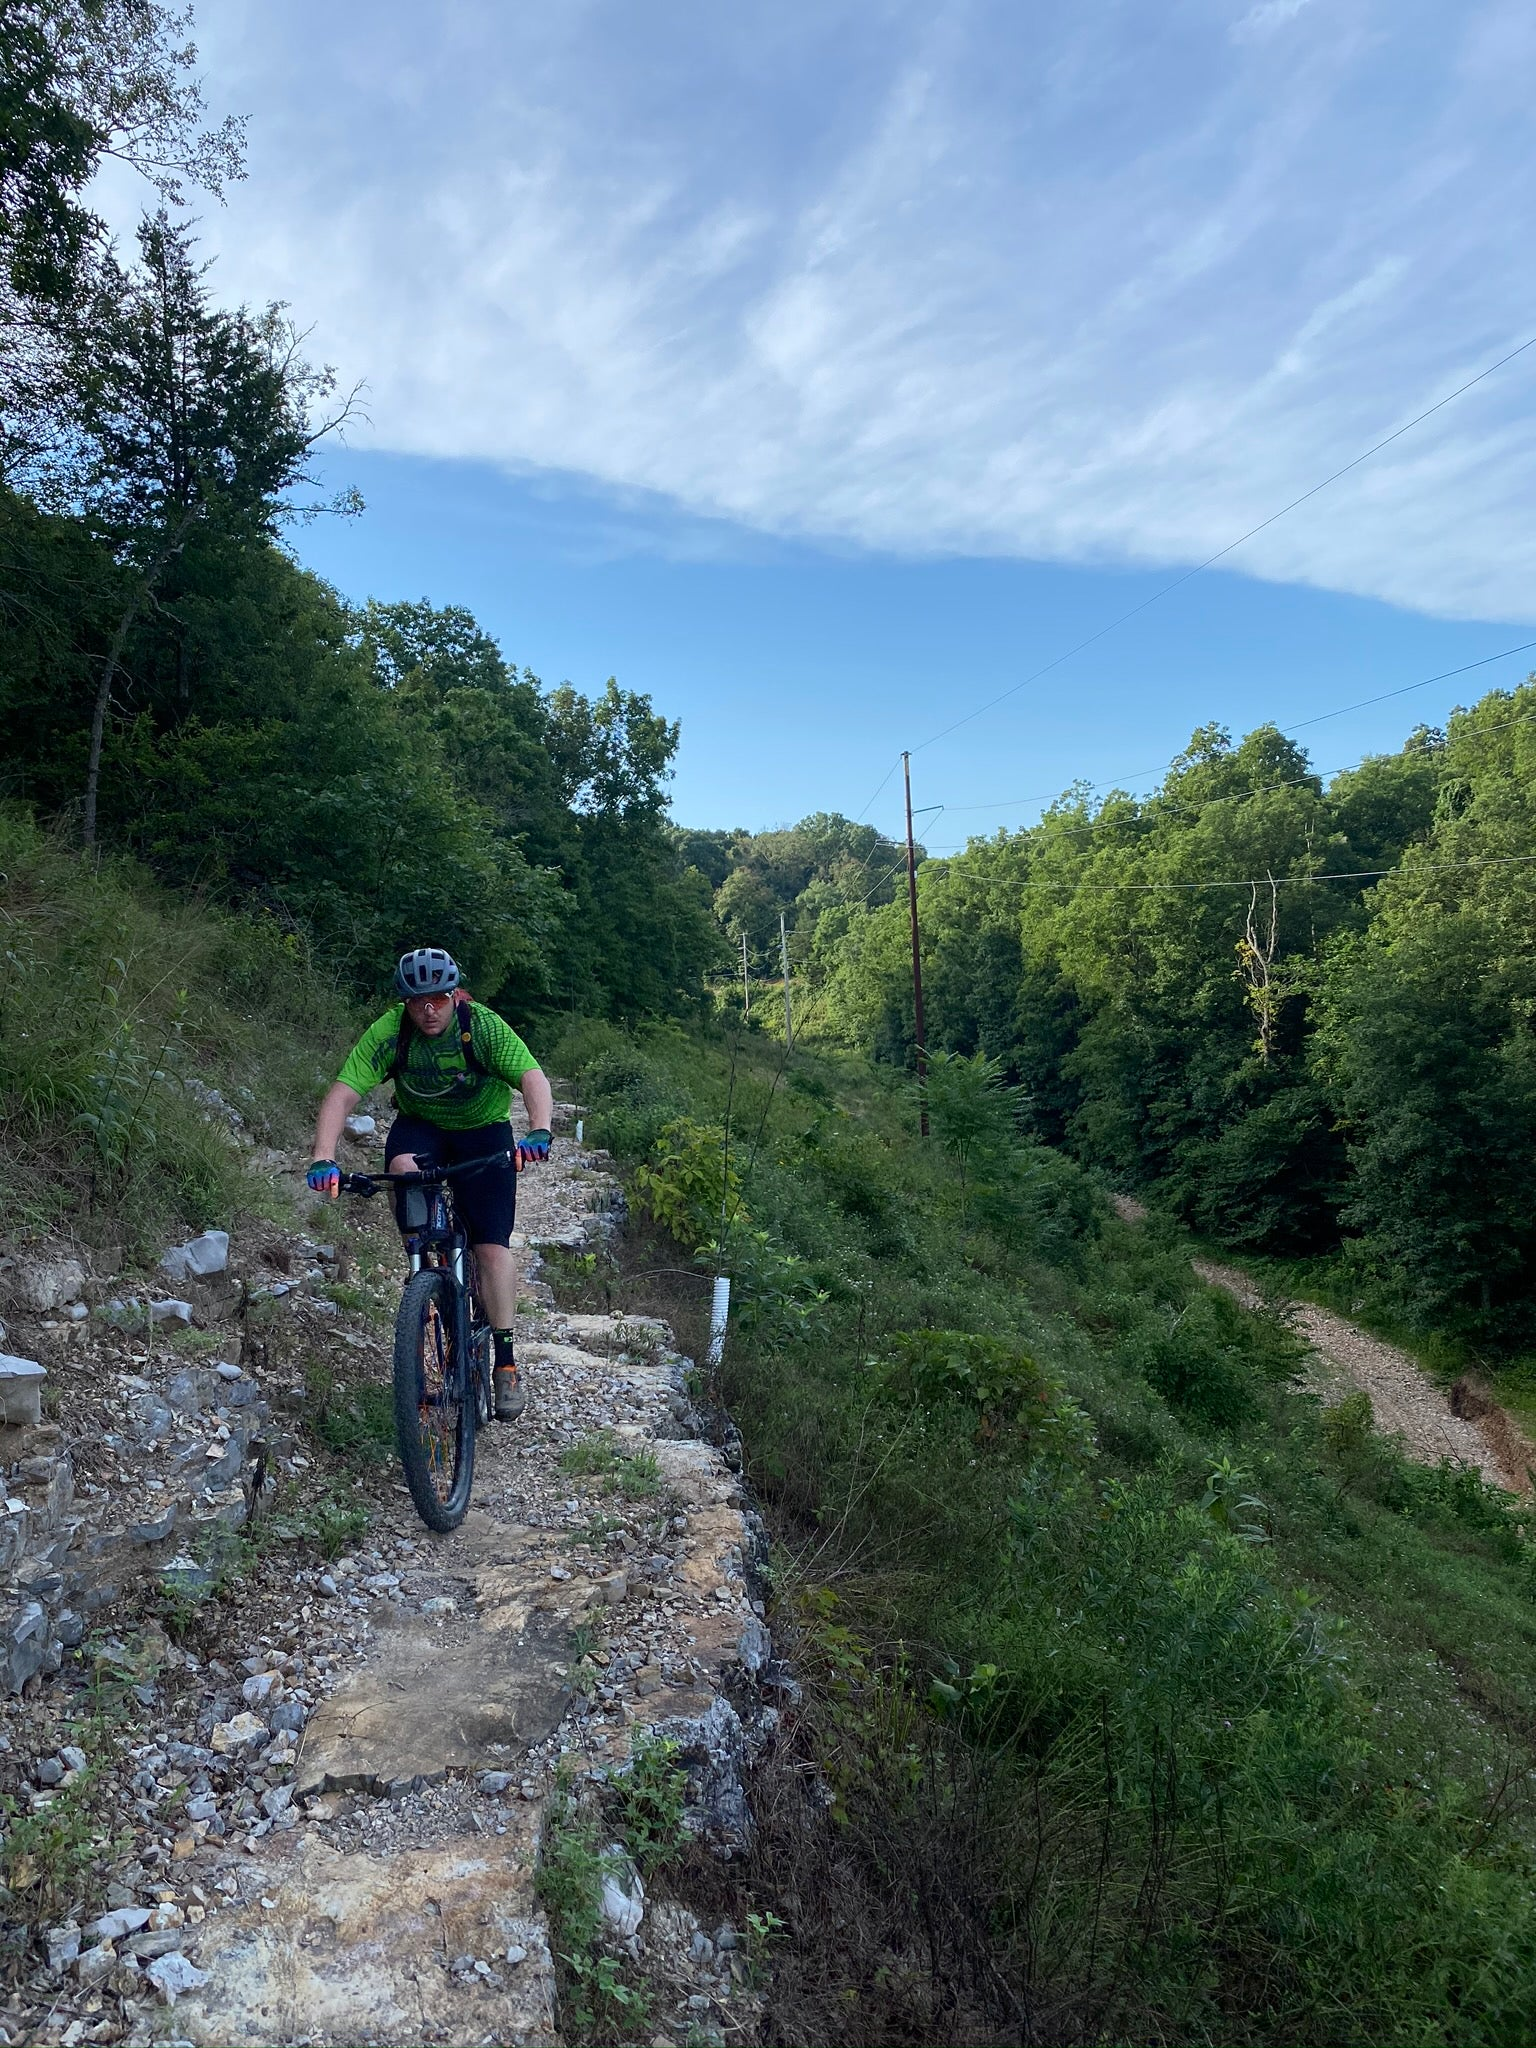 The Ledges at Back 40 Trails in Bella Vista, Arkansas